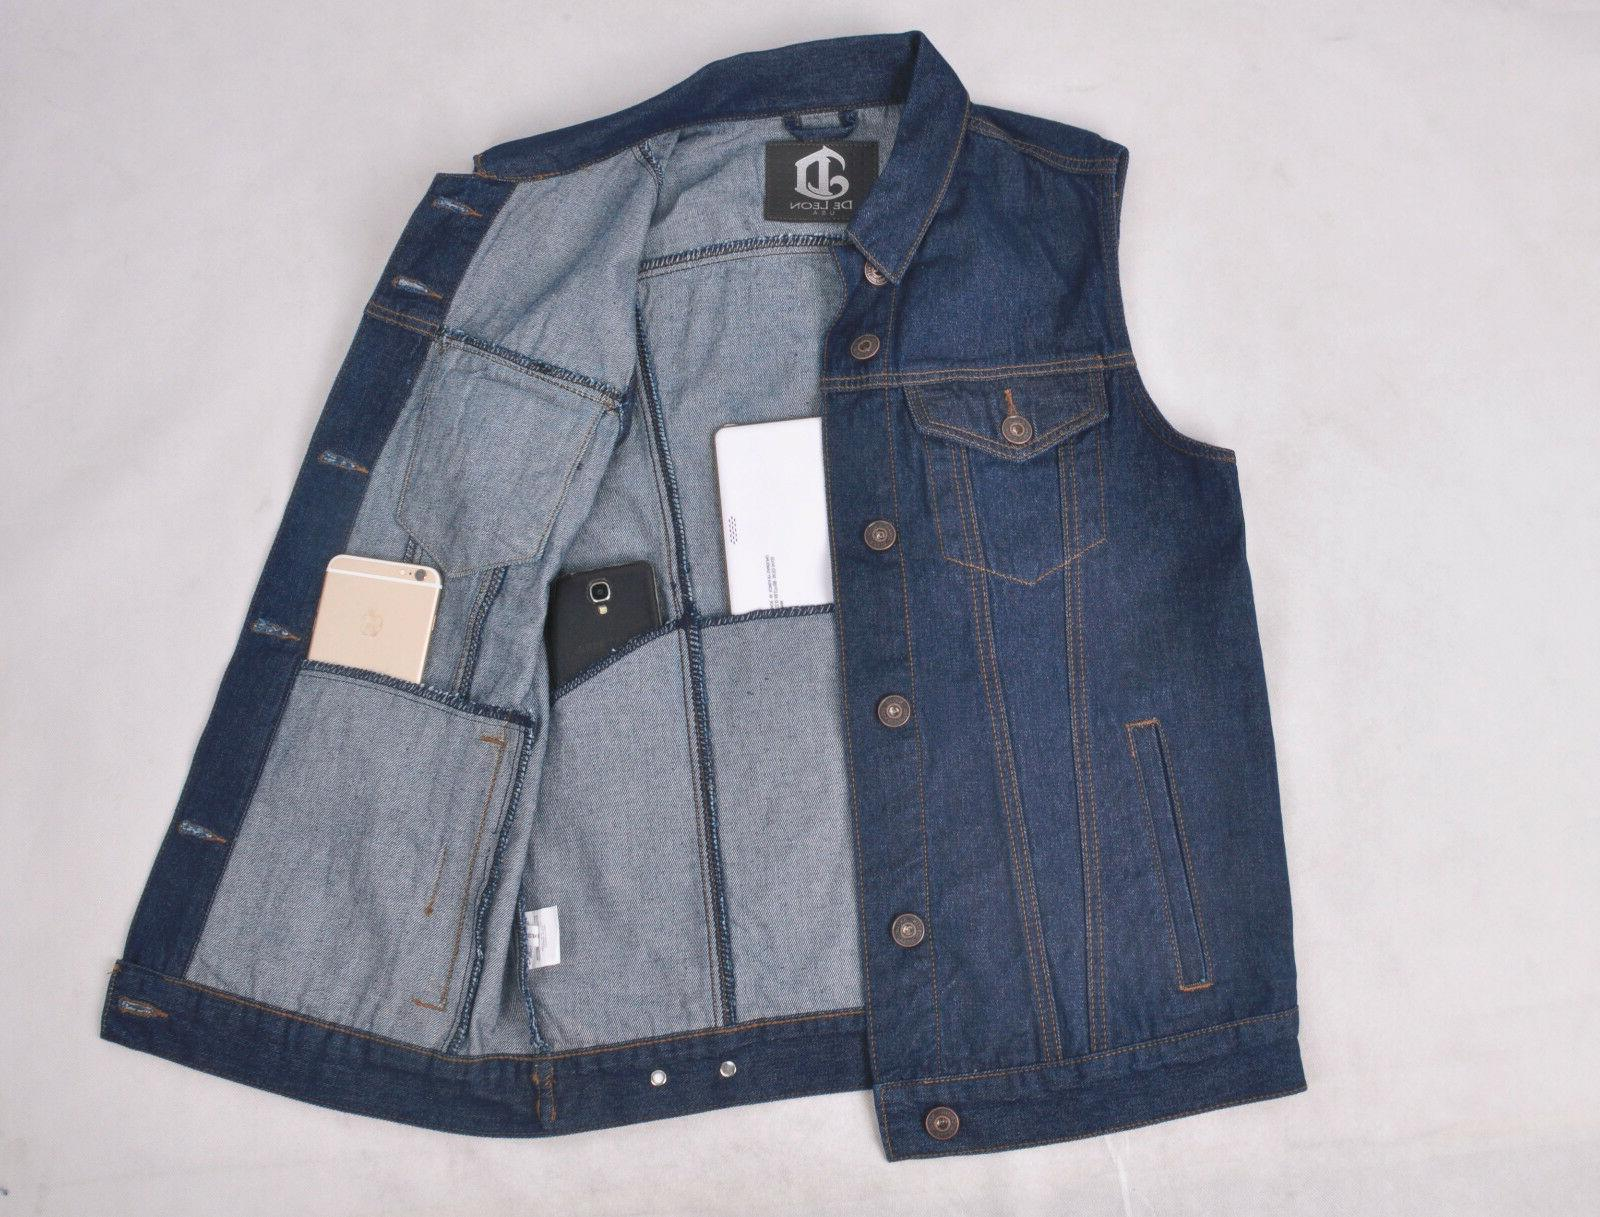 Mens Denim Jacket Sleeveless Bikerjacket DL-67117